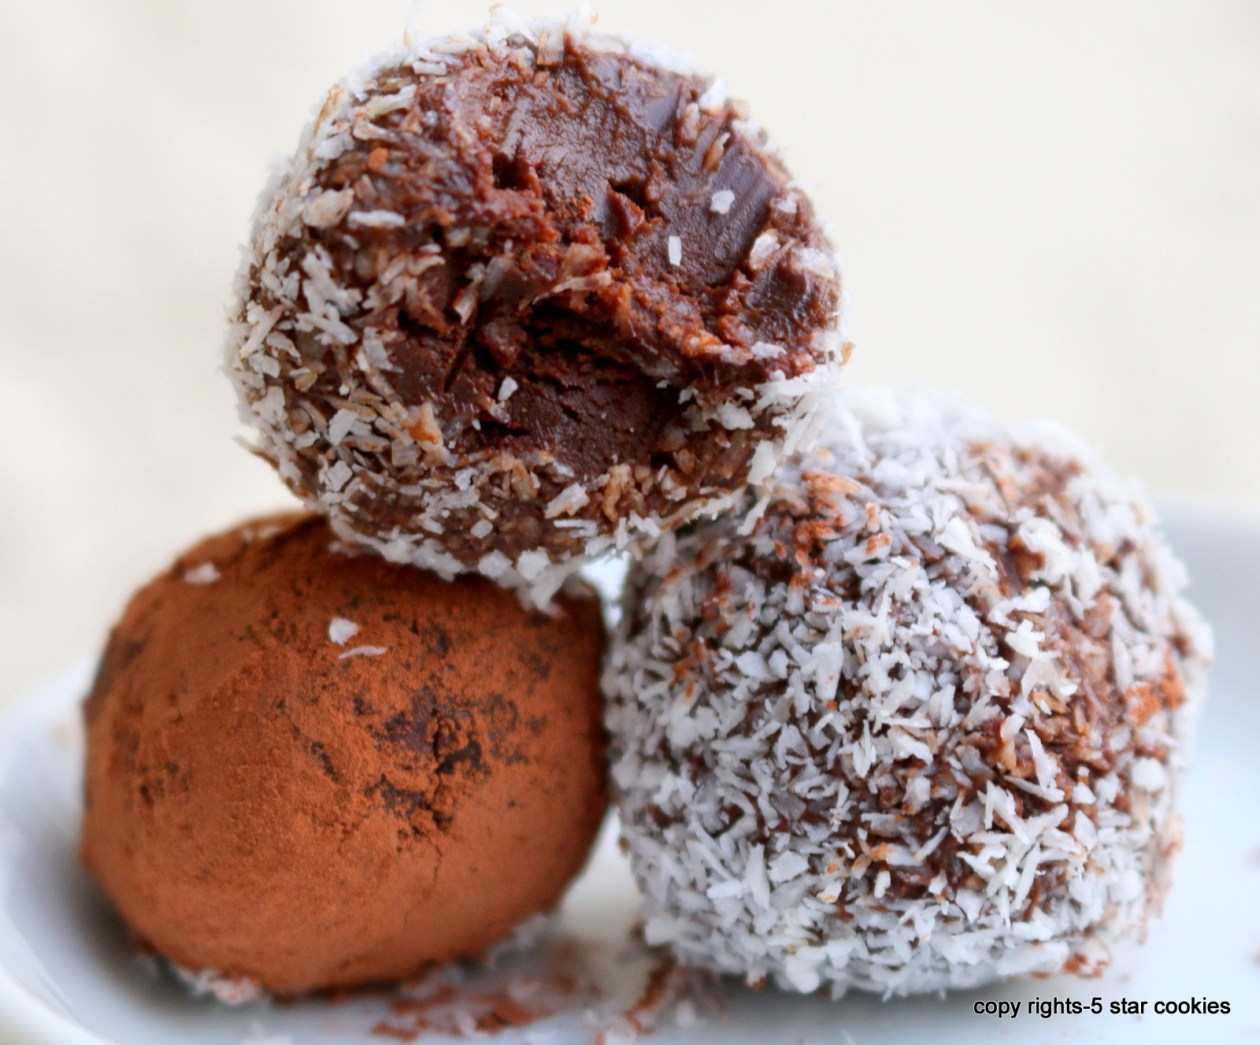 chocolate truffles from the best food blog 5starcookies-enjoy